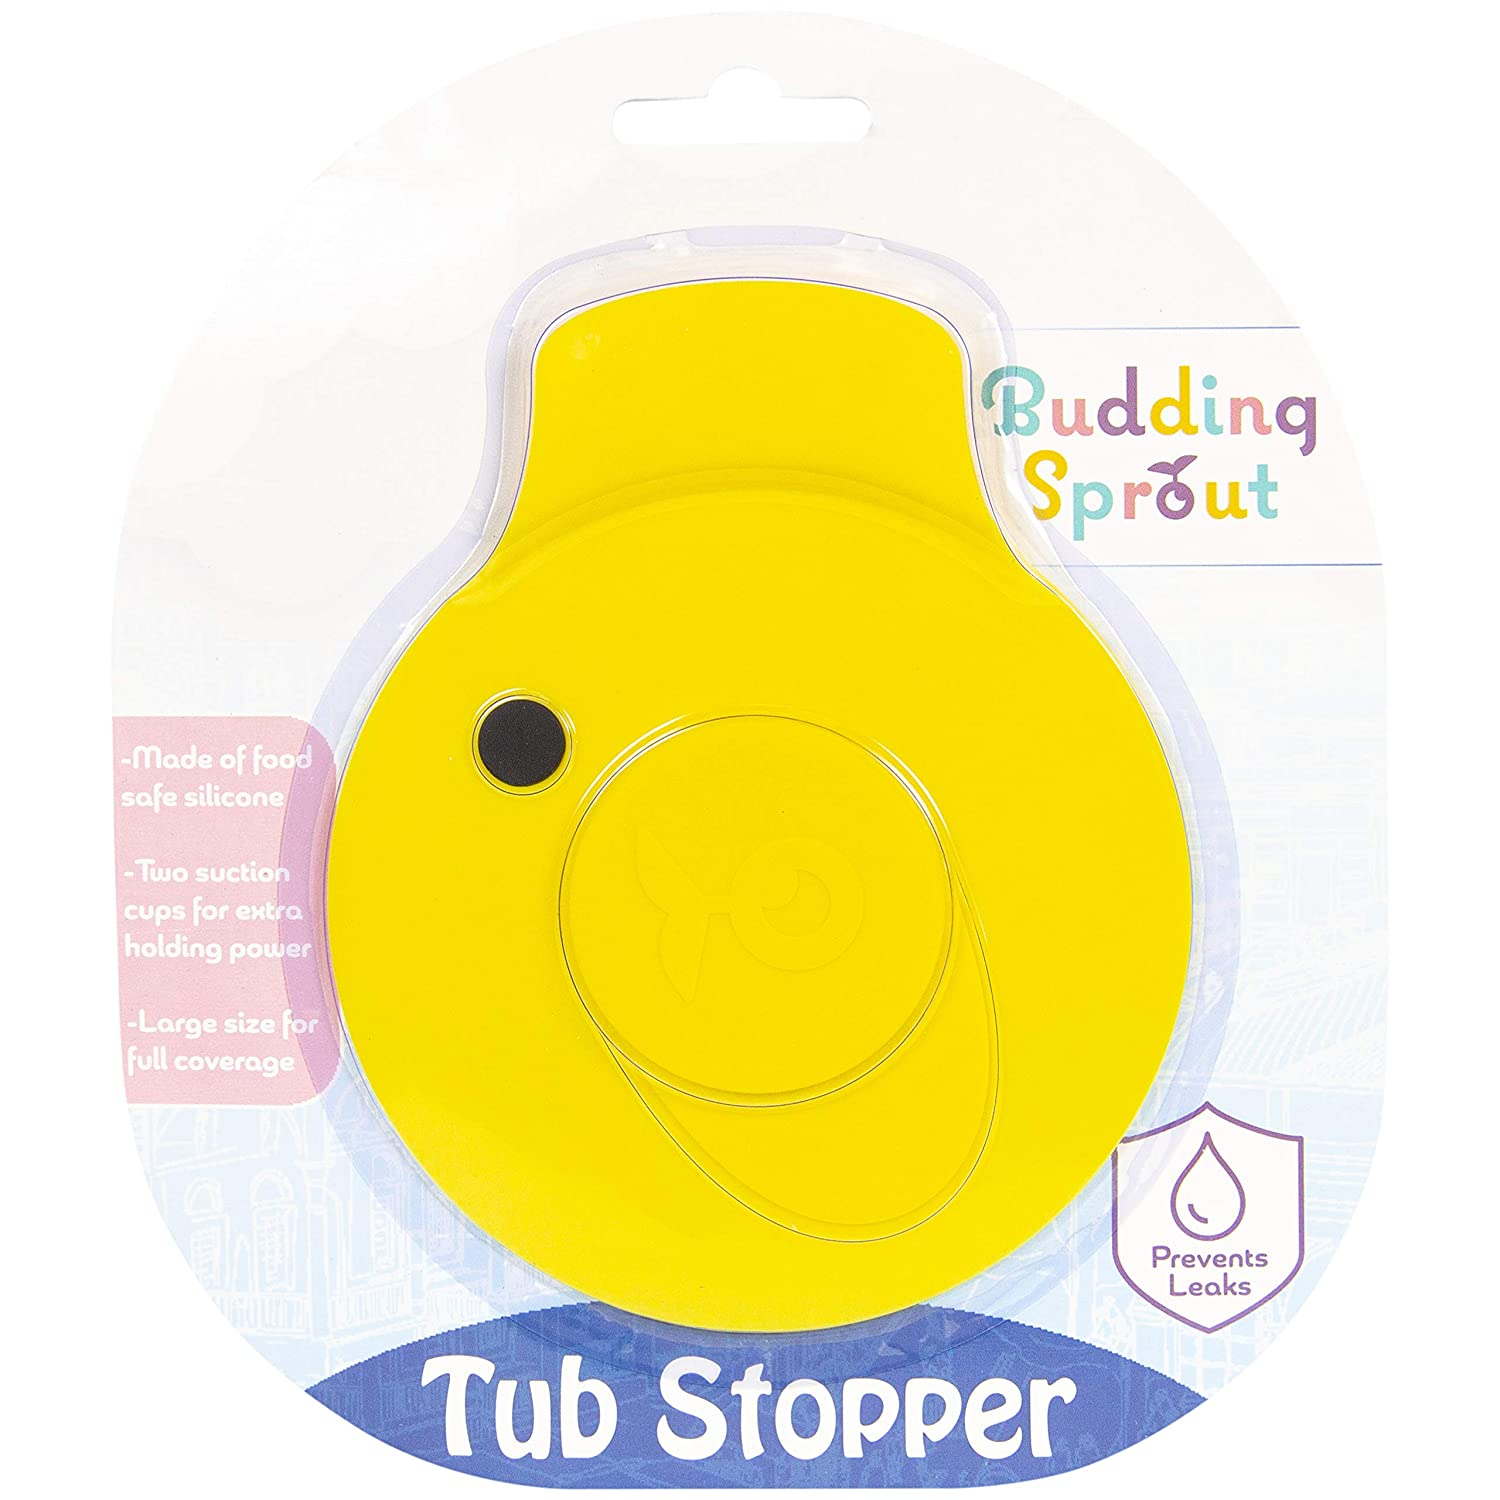 Budding Sprout Ducky Bath Tub Stopper Drain Cover. Universal Fit, Made of Food Safe Silicone. Cute Design for Toddlers and Children of All Ages